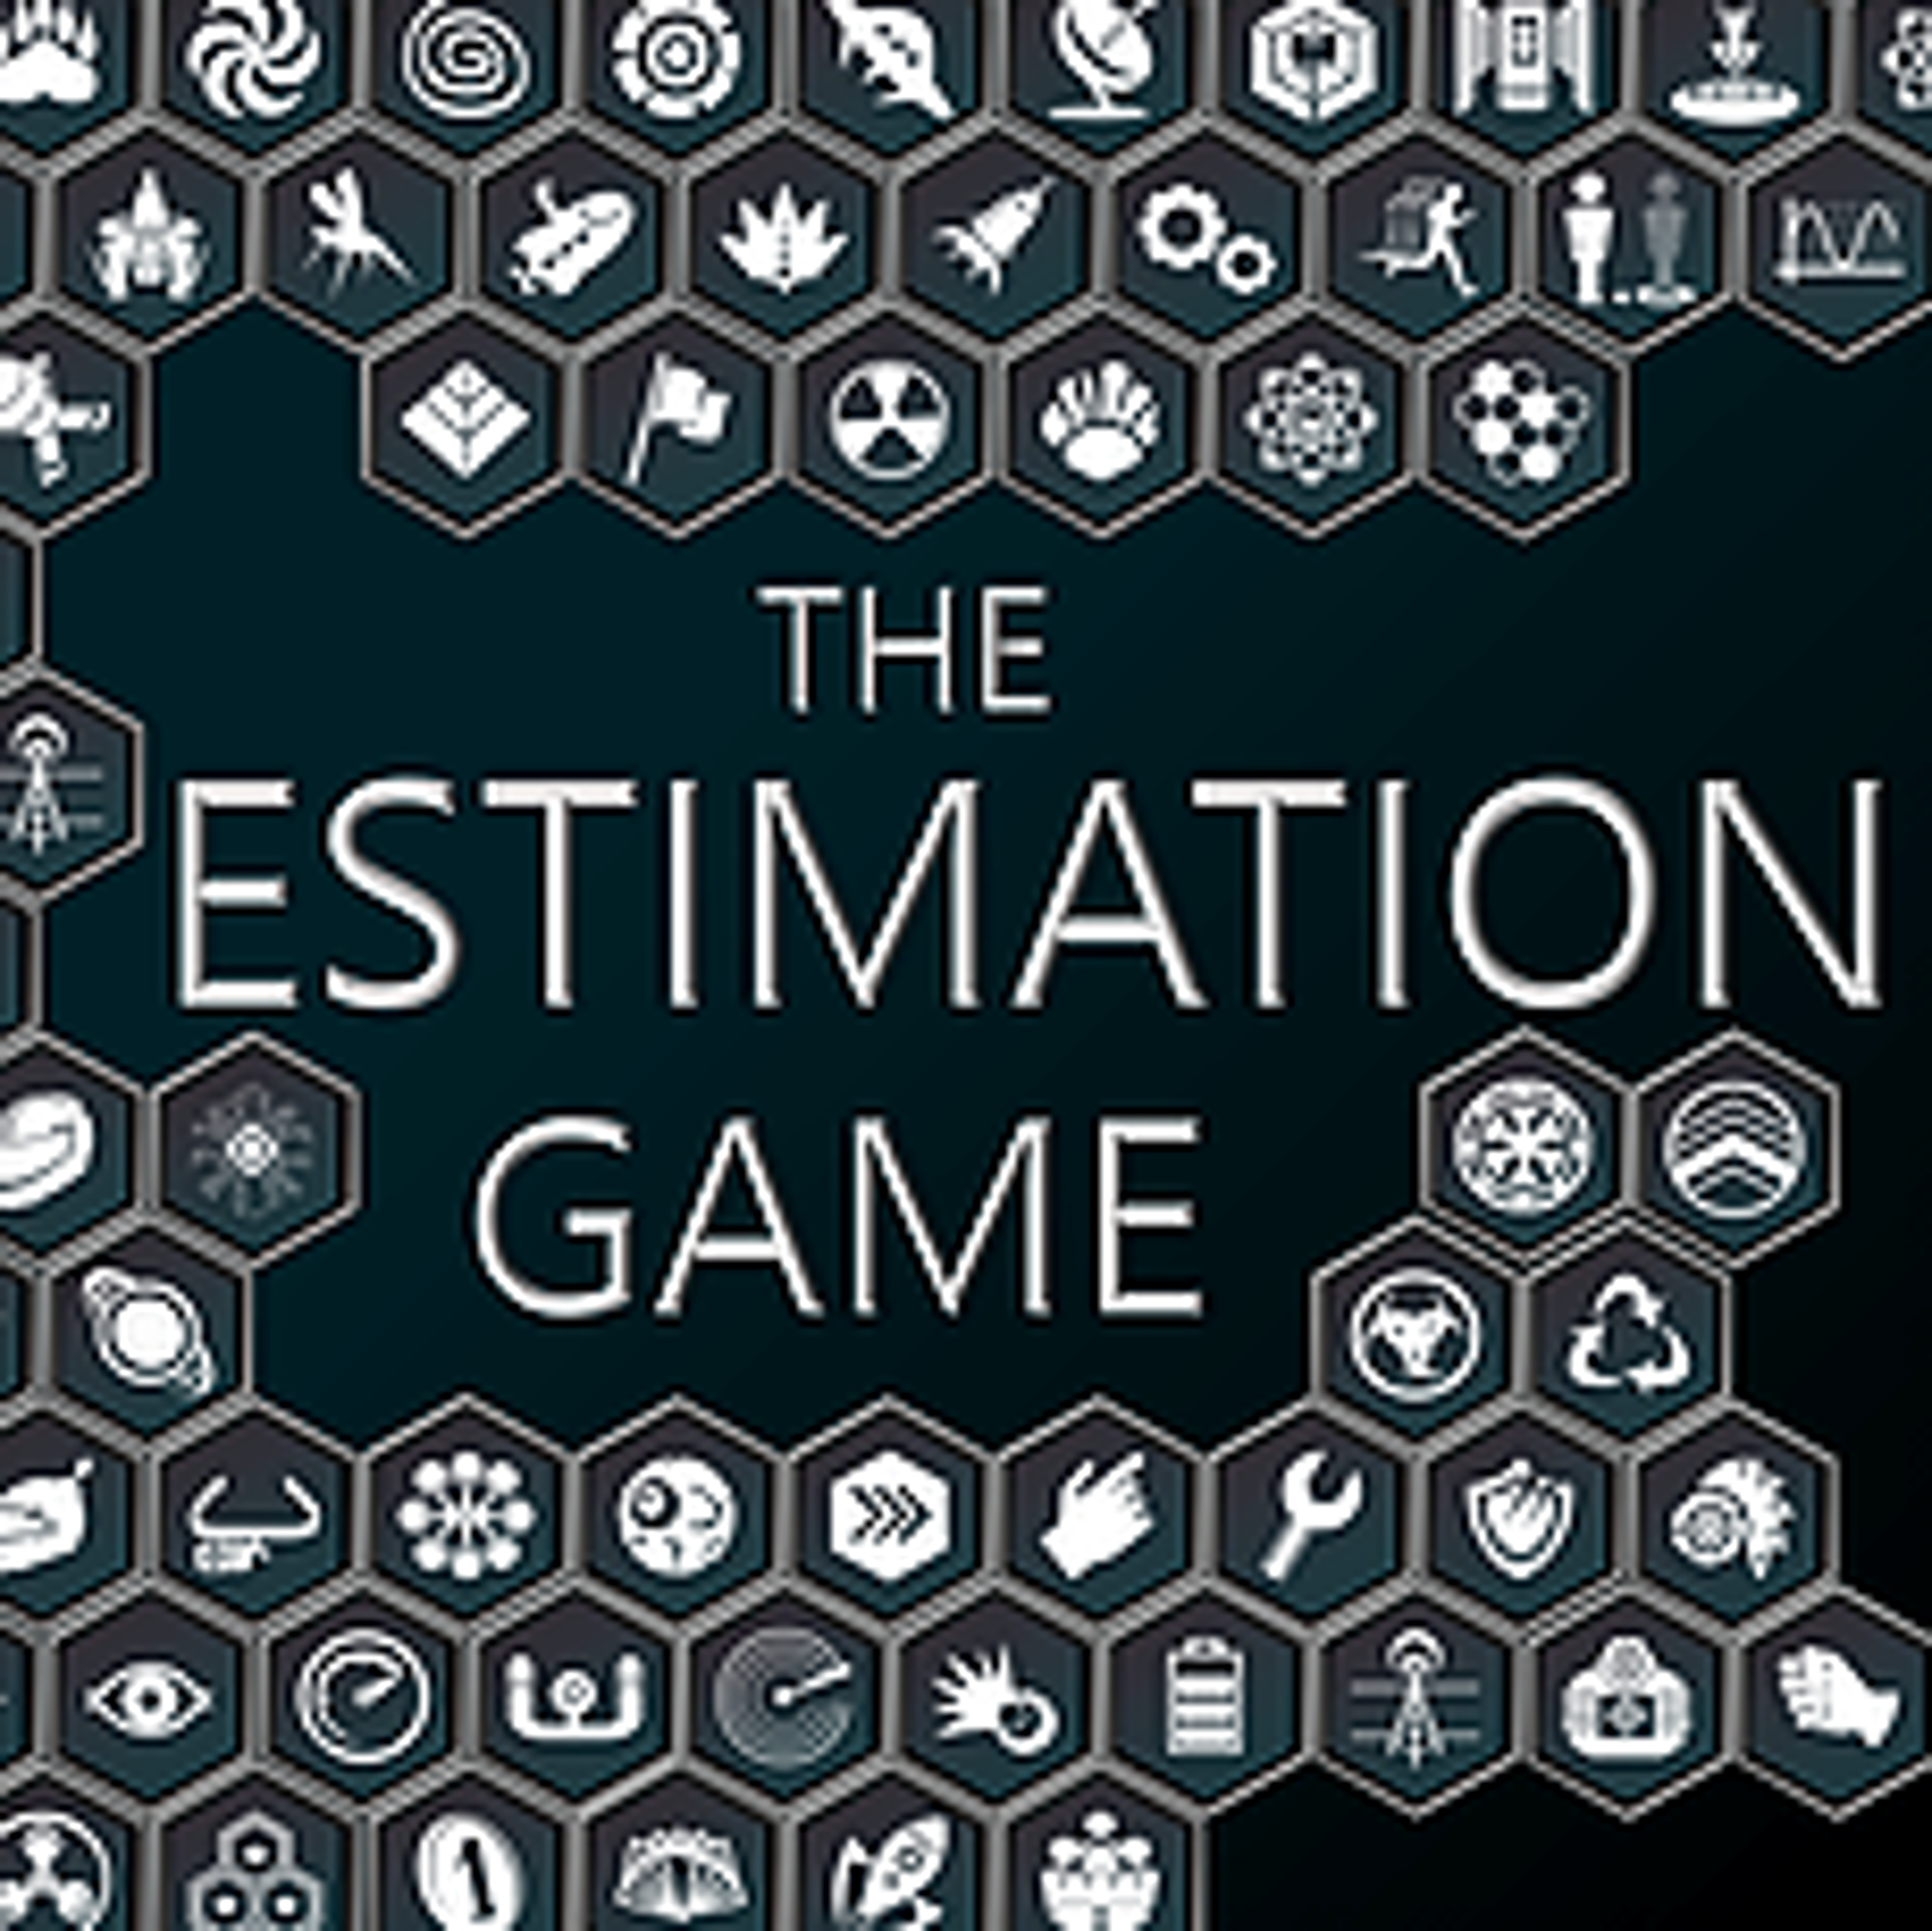 Estimation game.png